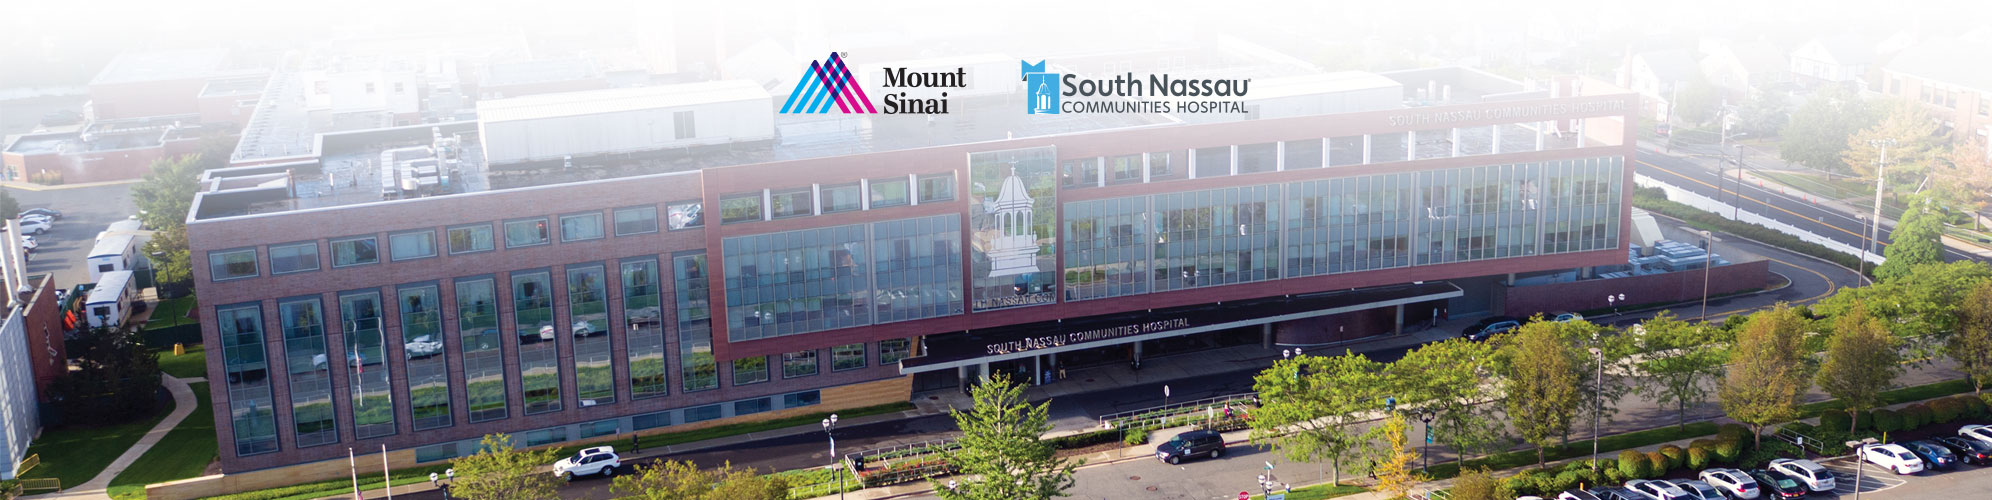 South Nassau Joins Mount Sinai Health System South Nassau to Be Mount Sinai's 'Flagship' Hospital on Long Island ... LEARN MORE>